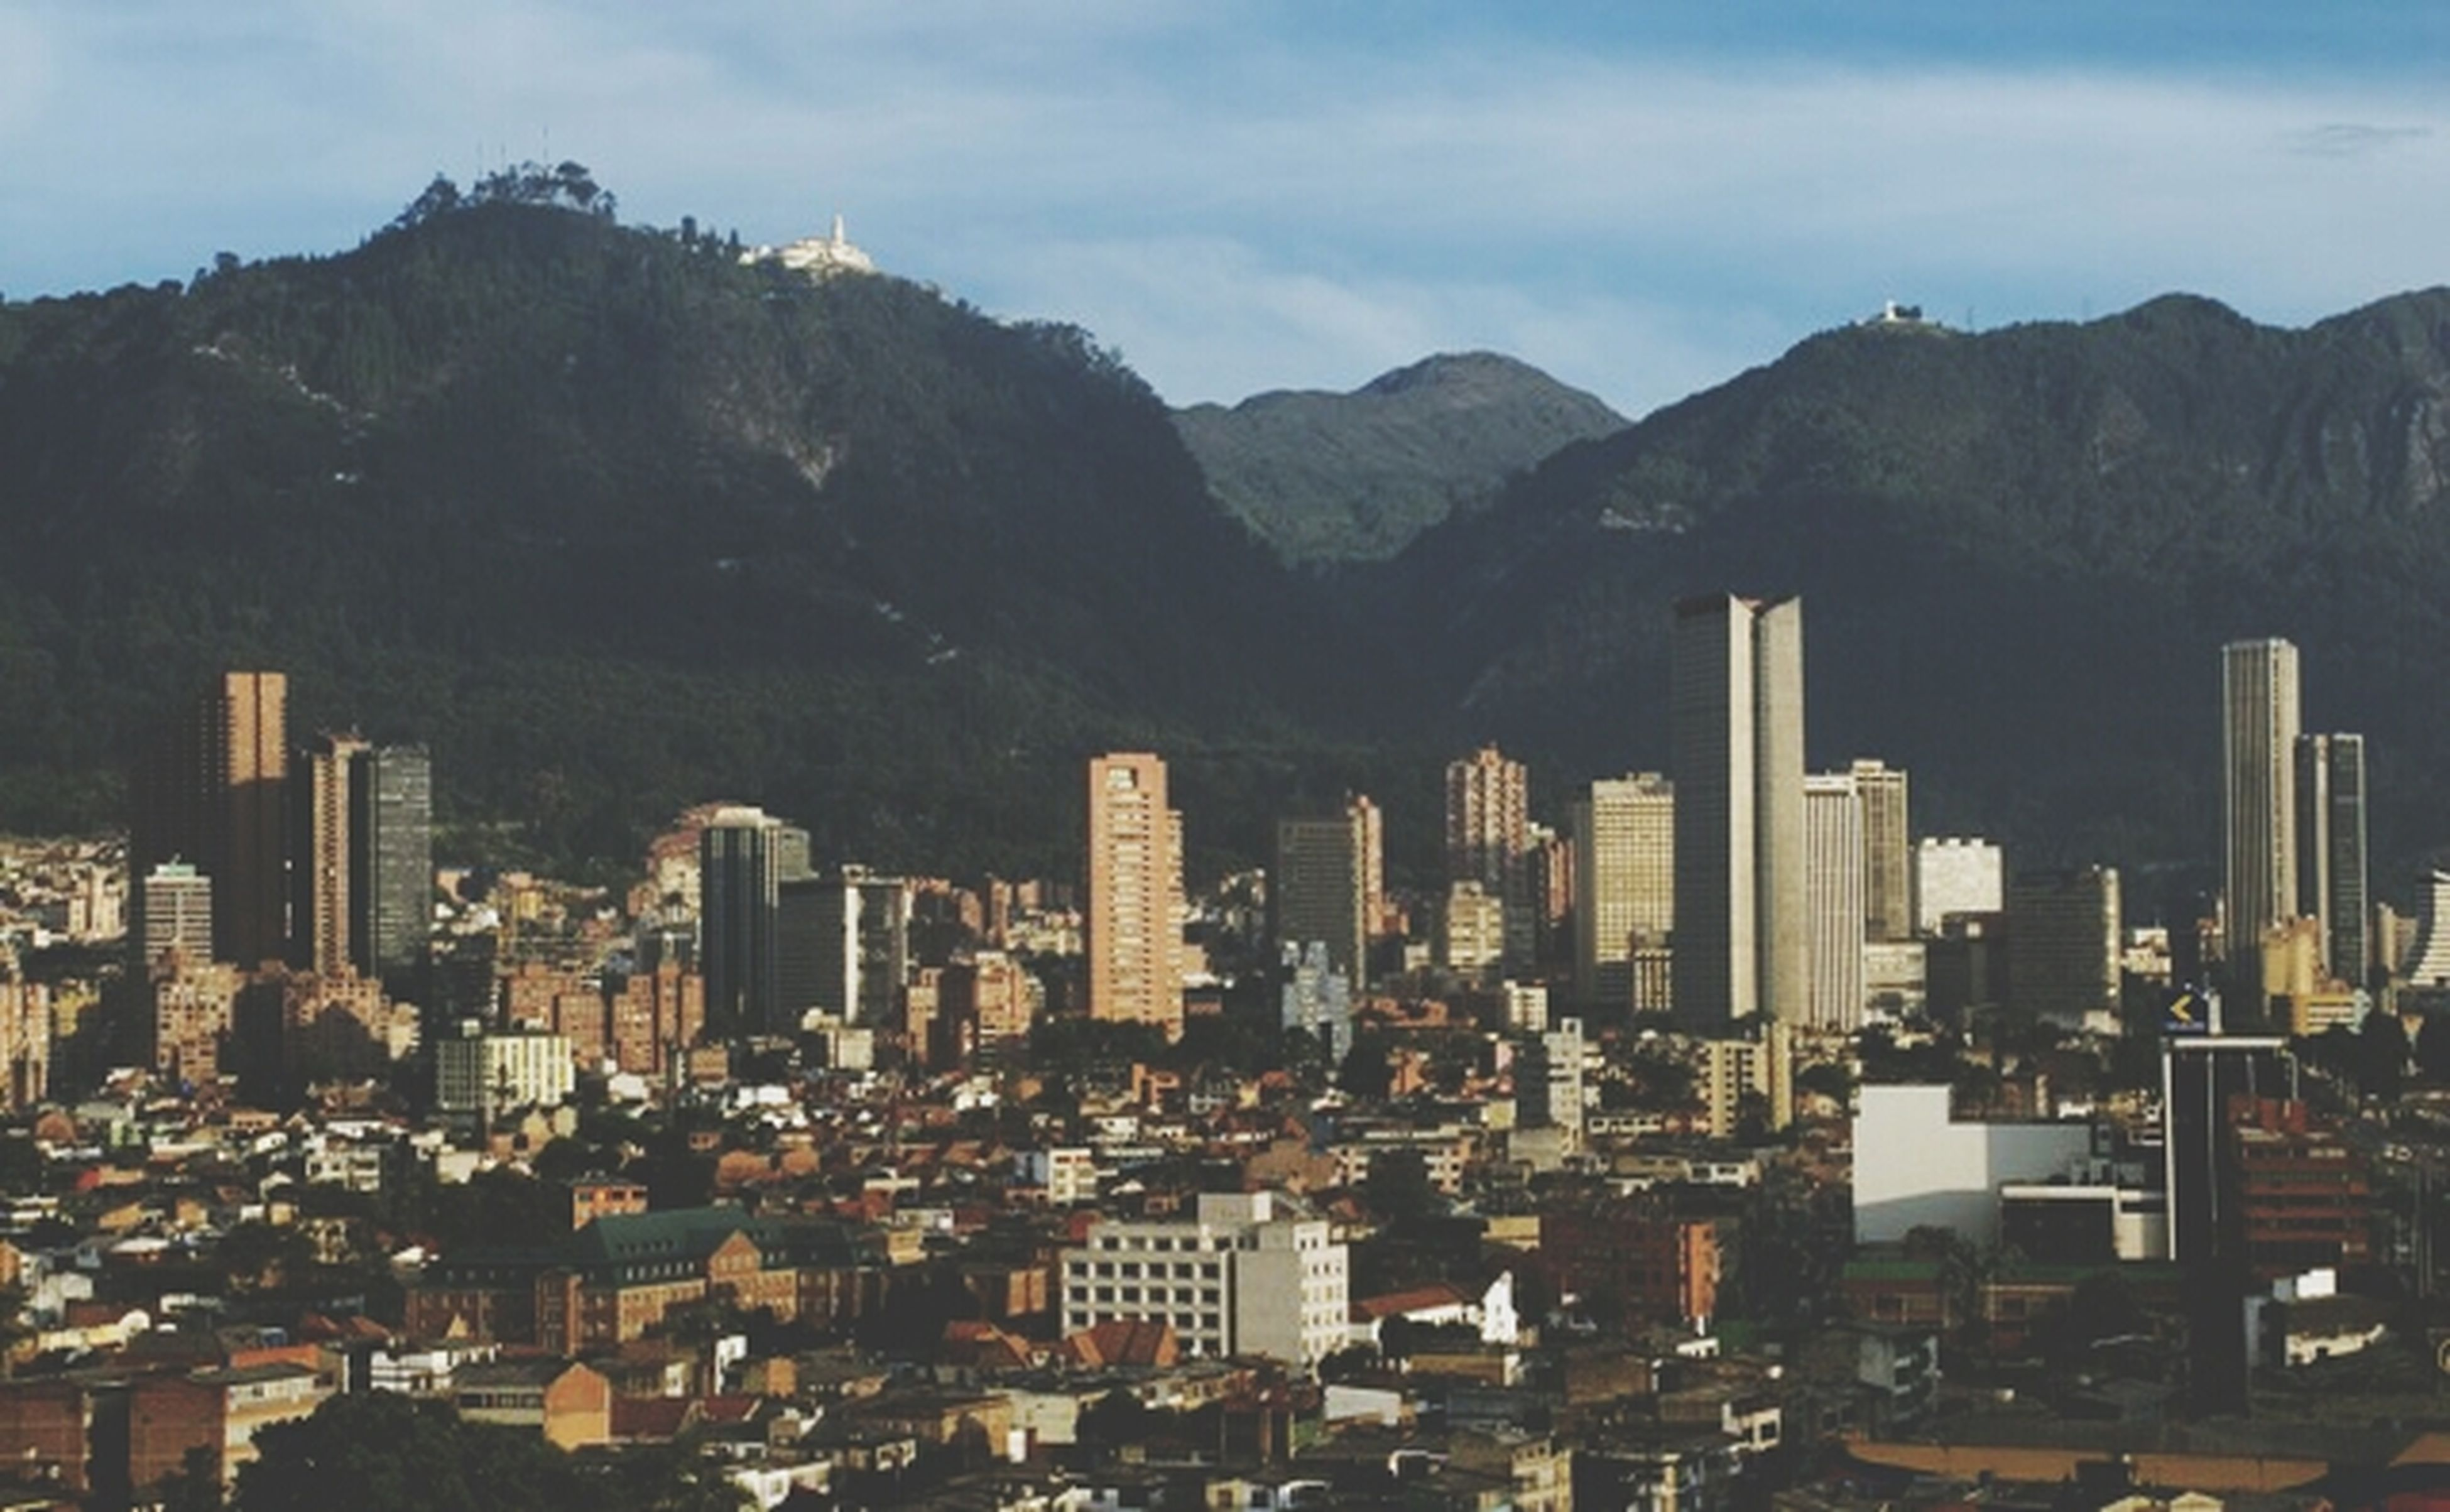 mountain, building exterior, architecture, built structure, city, sky, mountain range, cityscape, cloud - sky, residential building, residential district, high angle view, crowded, residential structure, cloud, day, outdoors, no people, nature, skyscraper